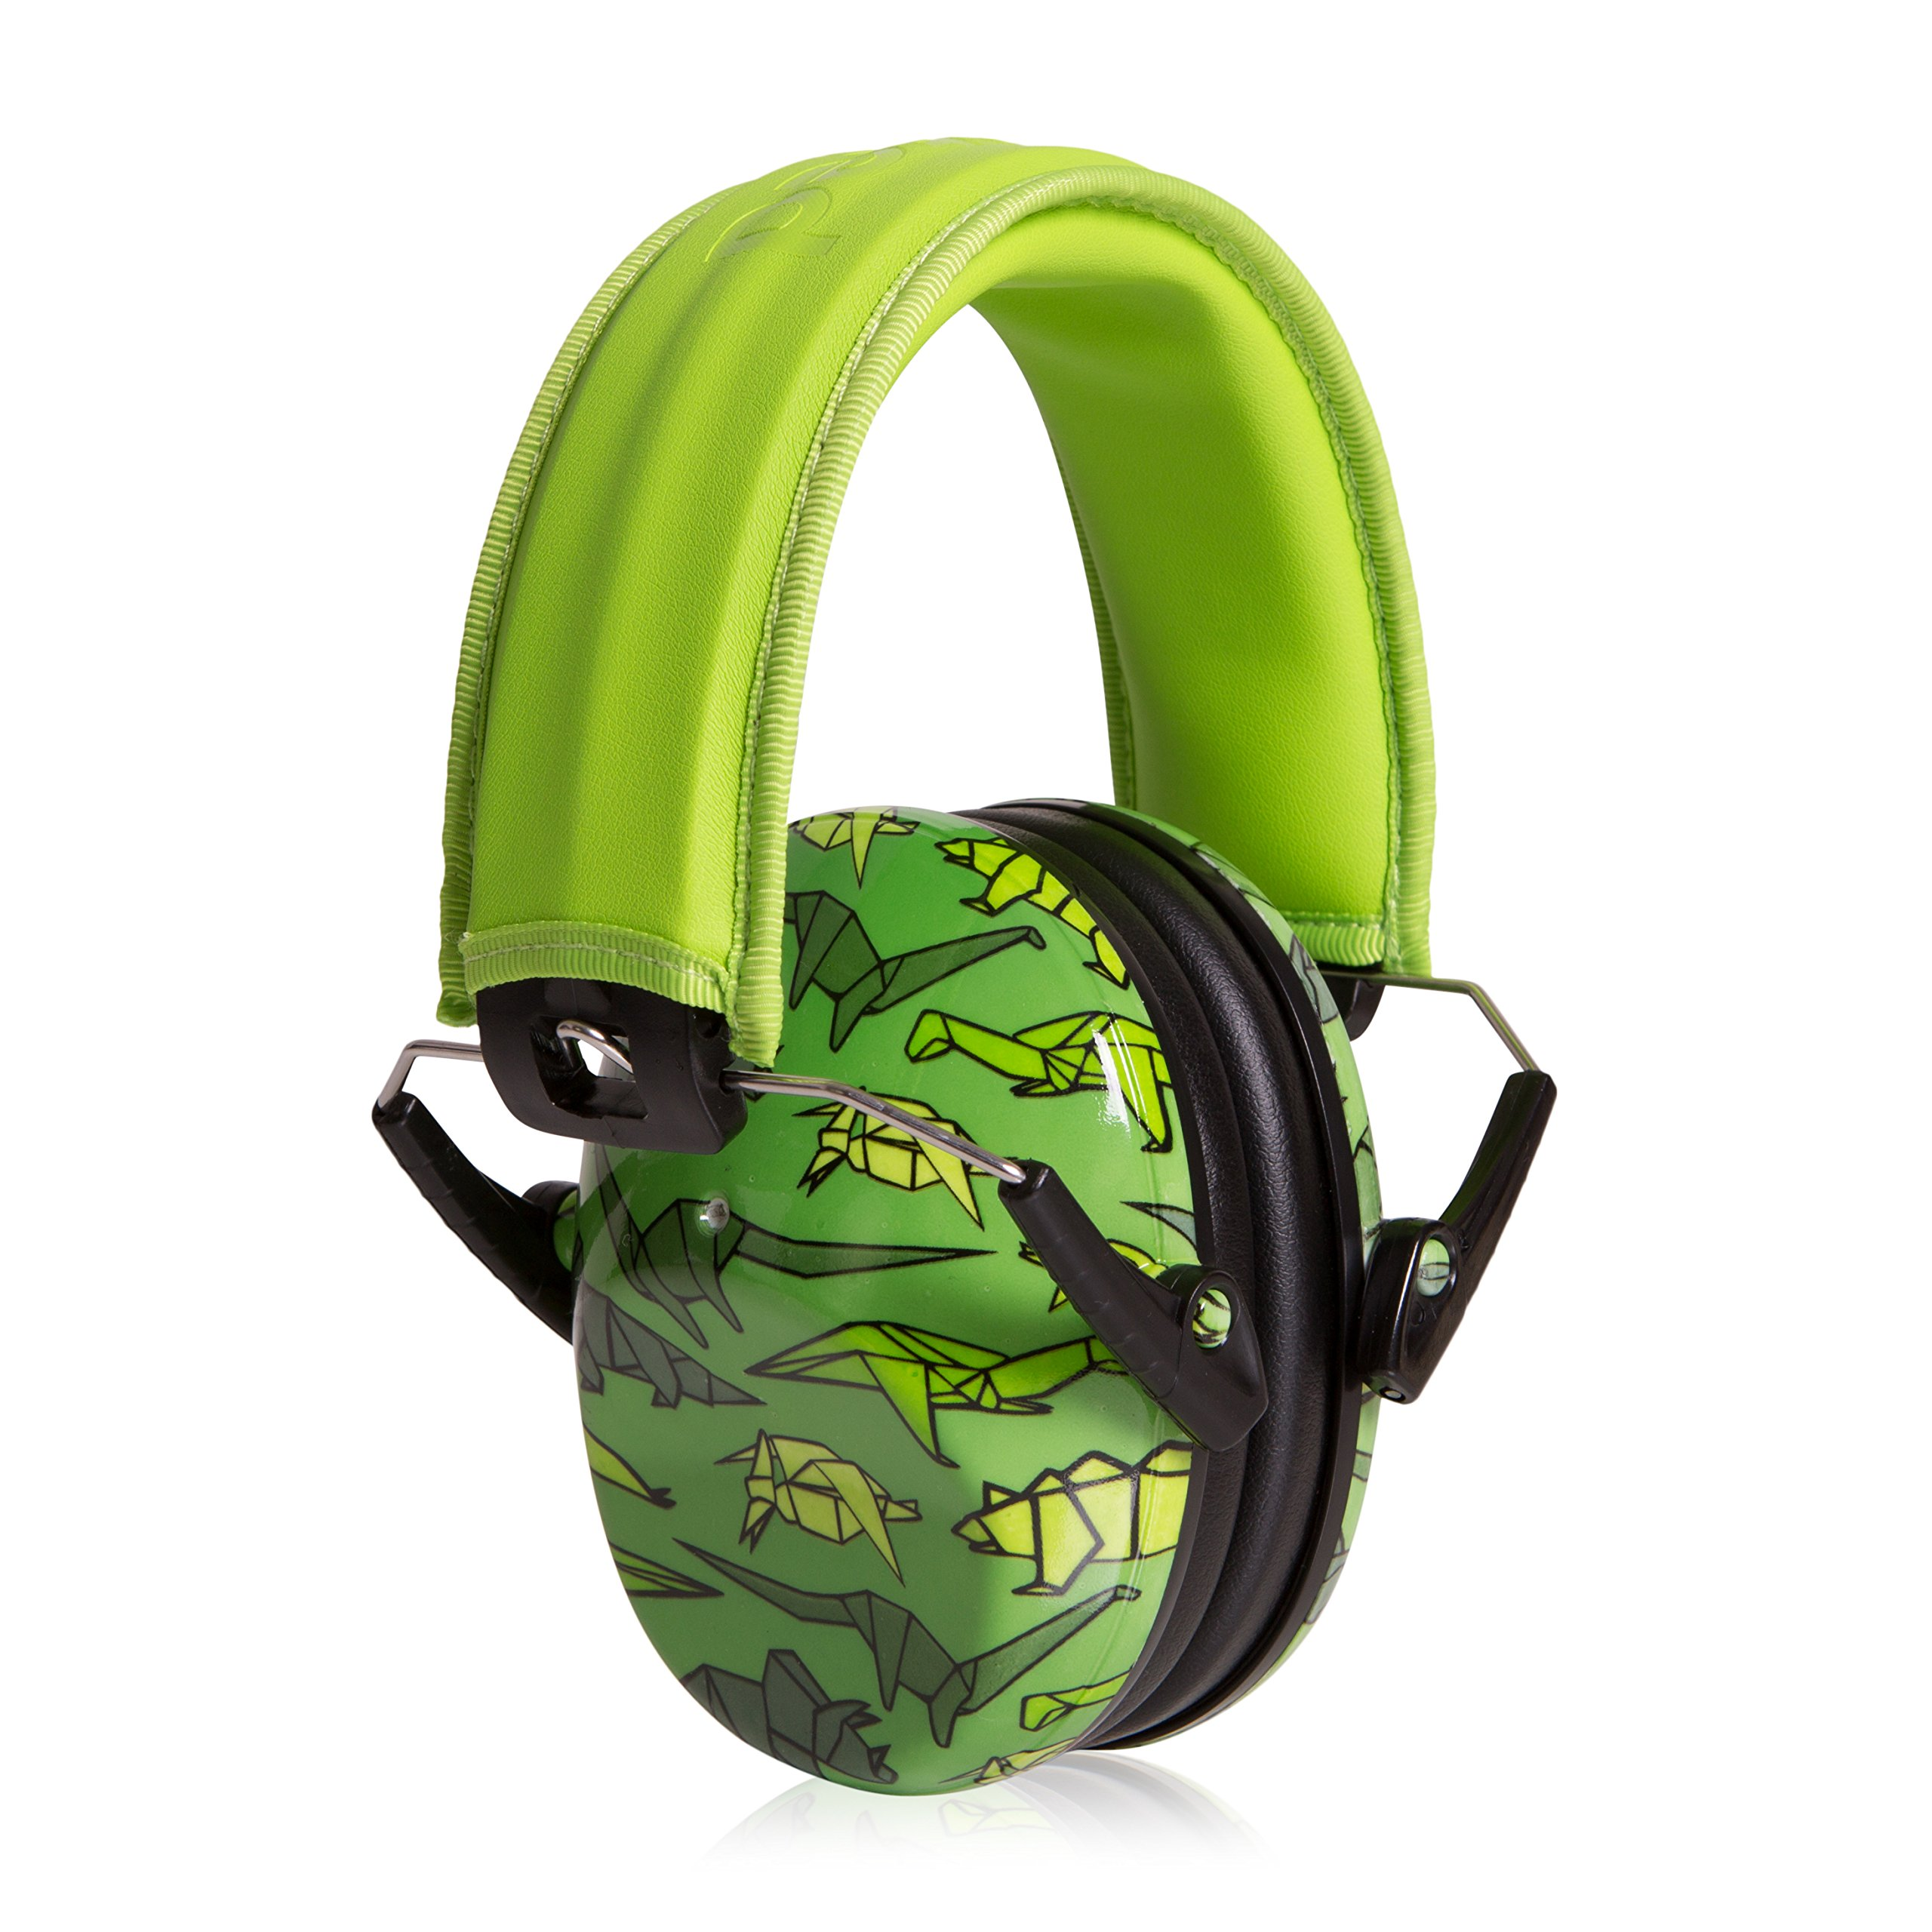 Muted Designer Hearing Protection Infants